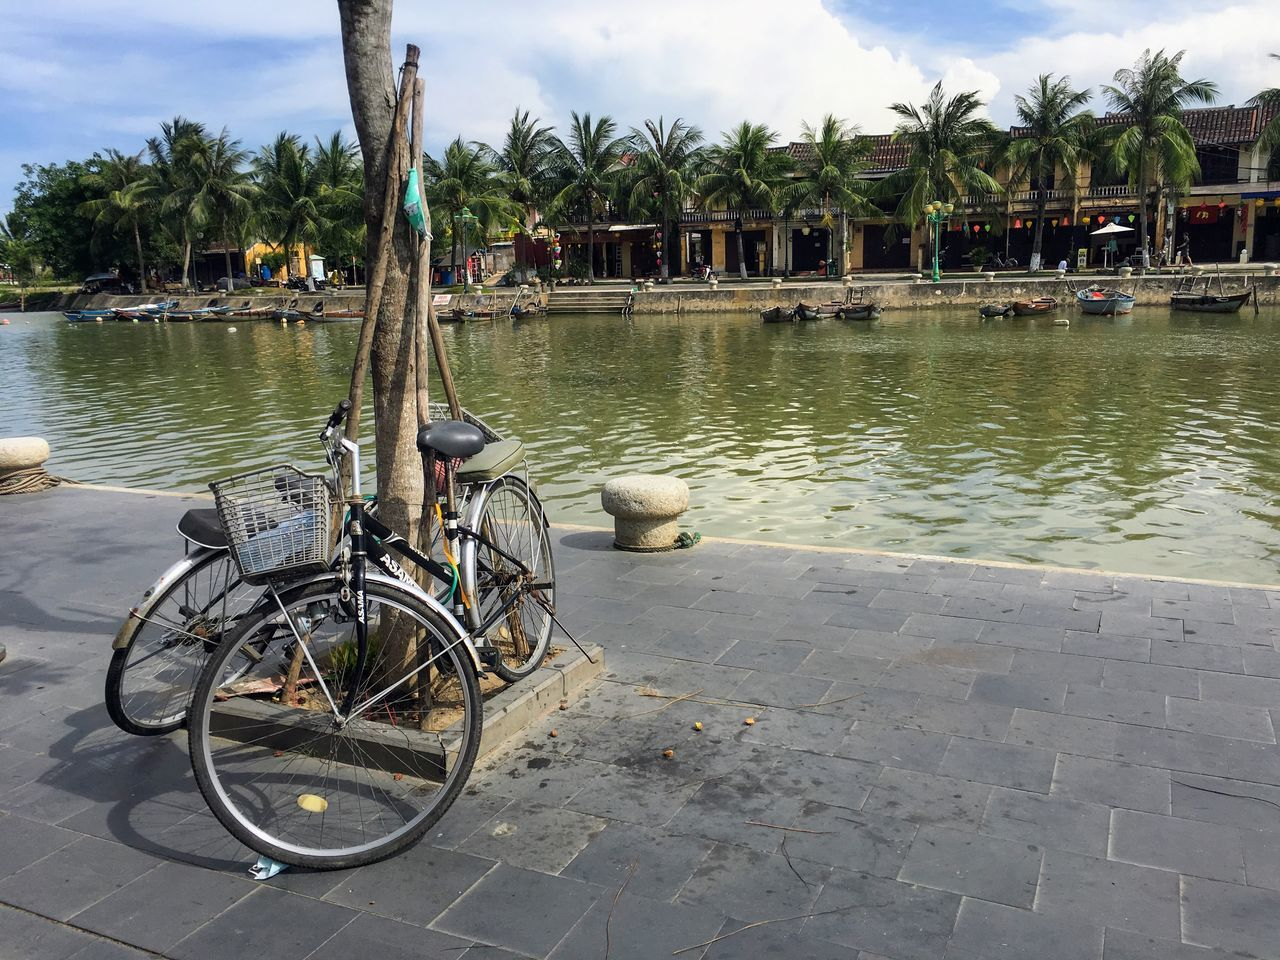 Architecture Bicycle Building Exterior Built Structure Canon SX280 Day Hoi An Nature No People Outdoors Palm Tree Sky Swimming Pool Transportation Tree Vietnam Water The Street Photographer - 2017 EyeEm Awards